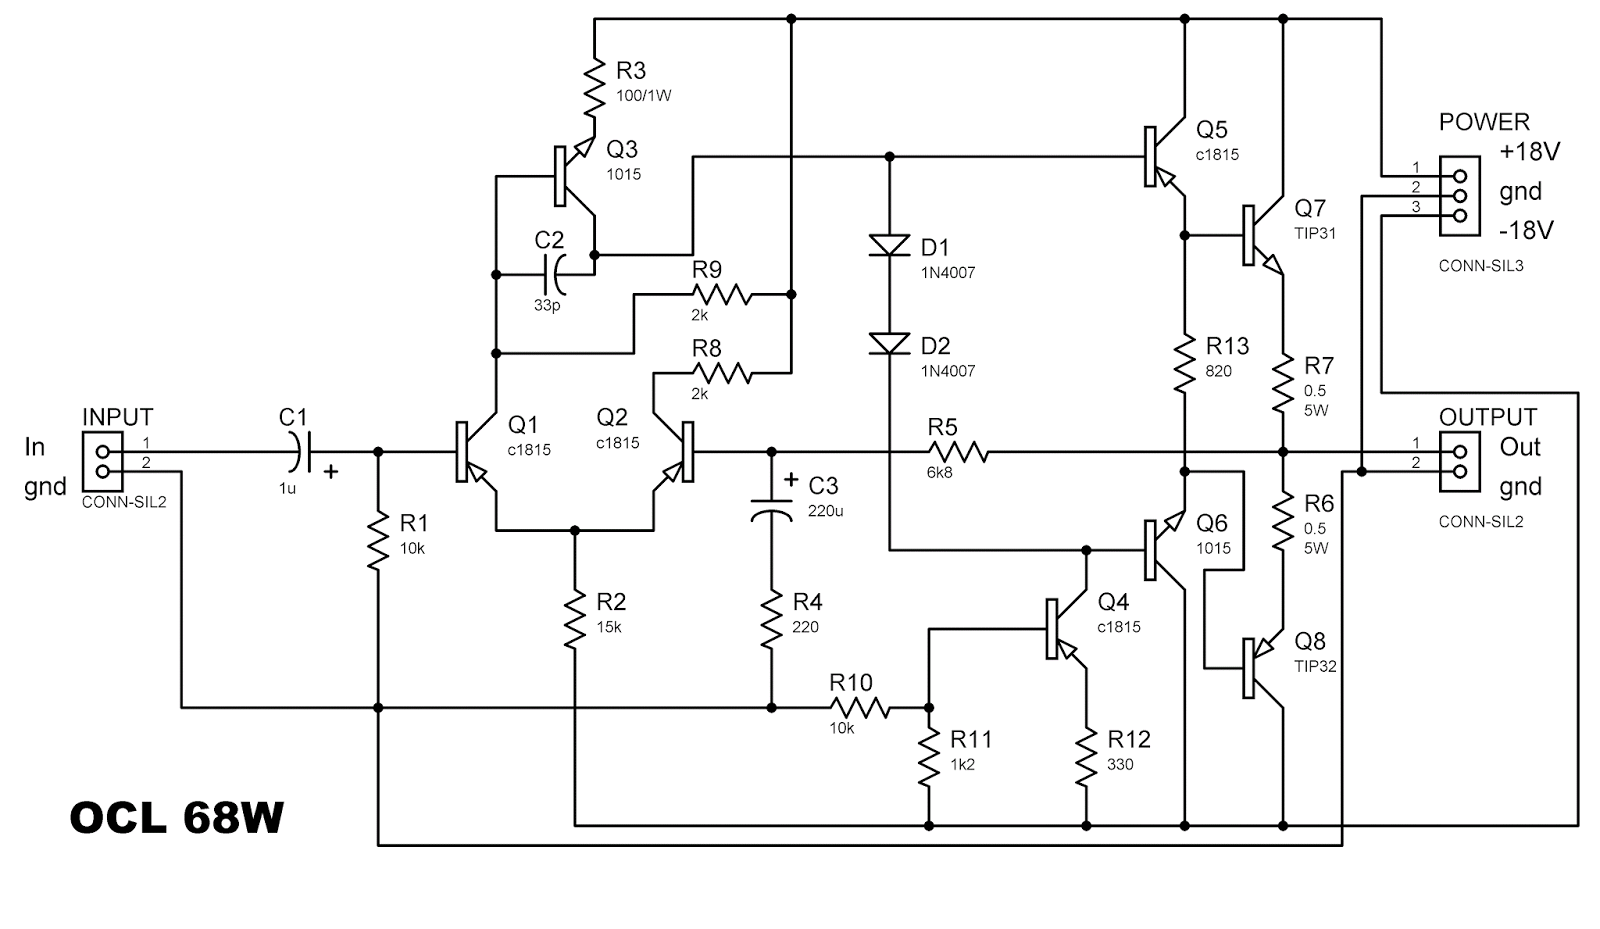 ocl 68 watt power amplifier in 2019 audio audio amplifier voltagemonitorcomparator amplifiercircuit circuit diagram [ 1600 x 929 Pixel ]